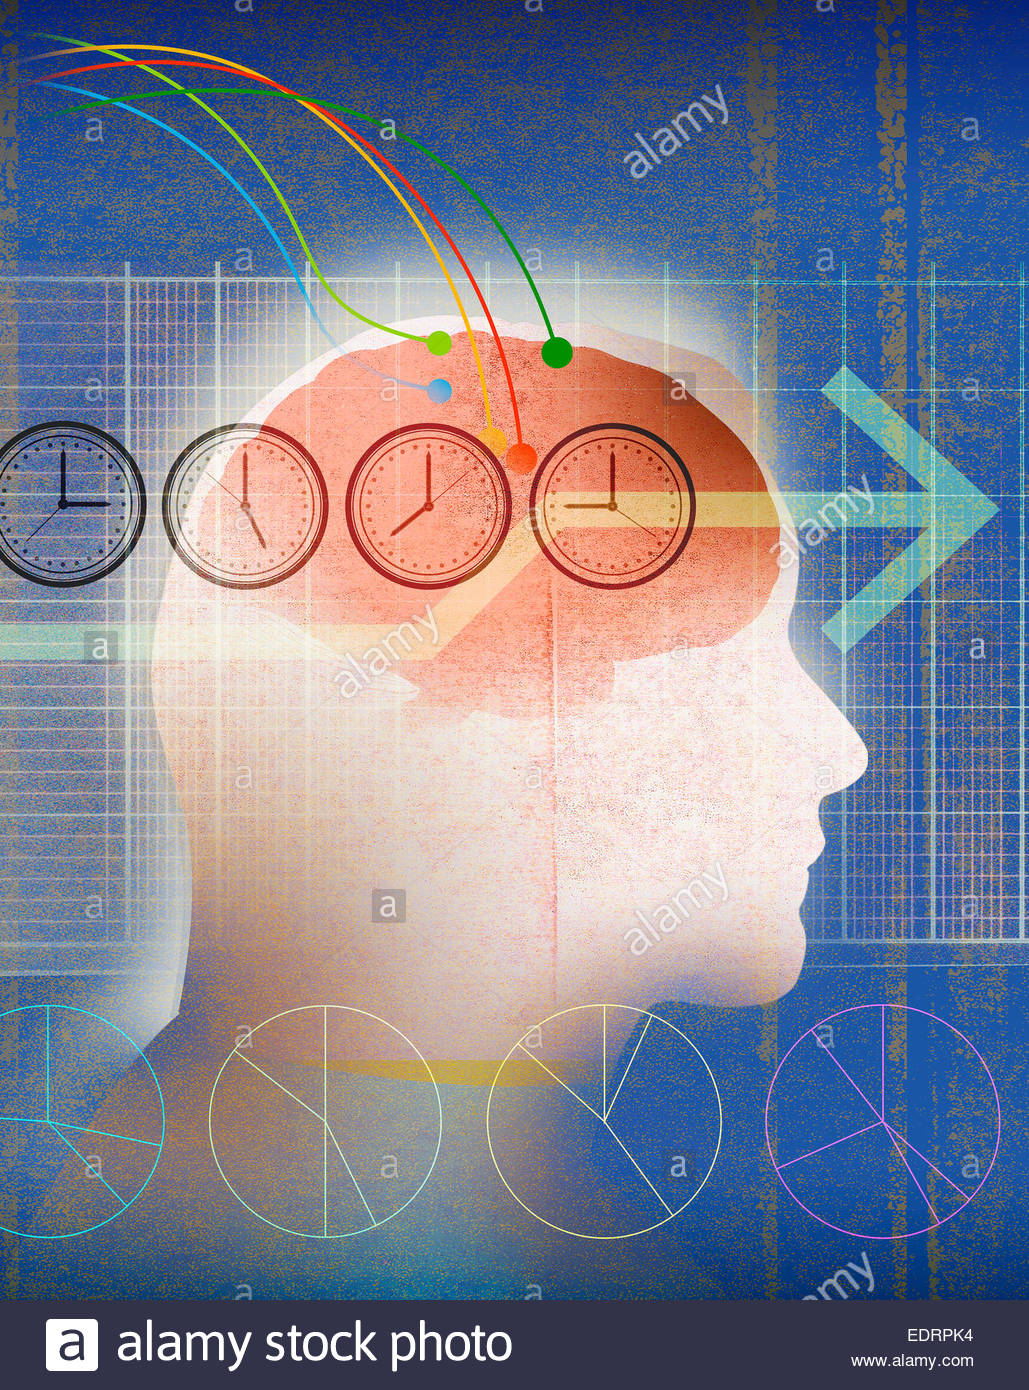 Business planning with abstract brain connections to graphs and international time zone clocks - Stock Image